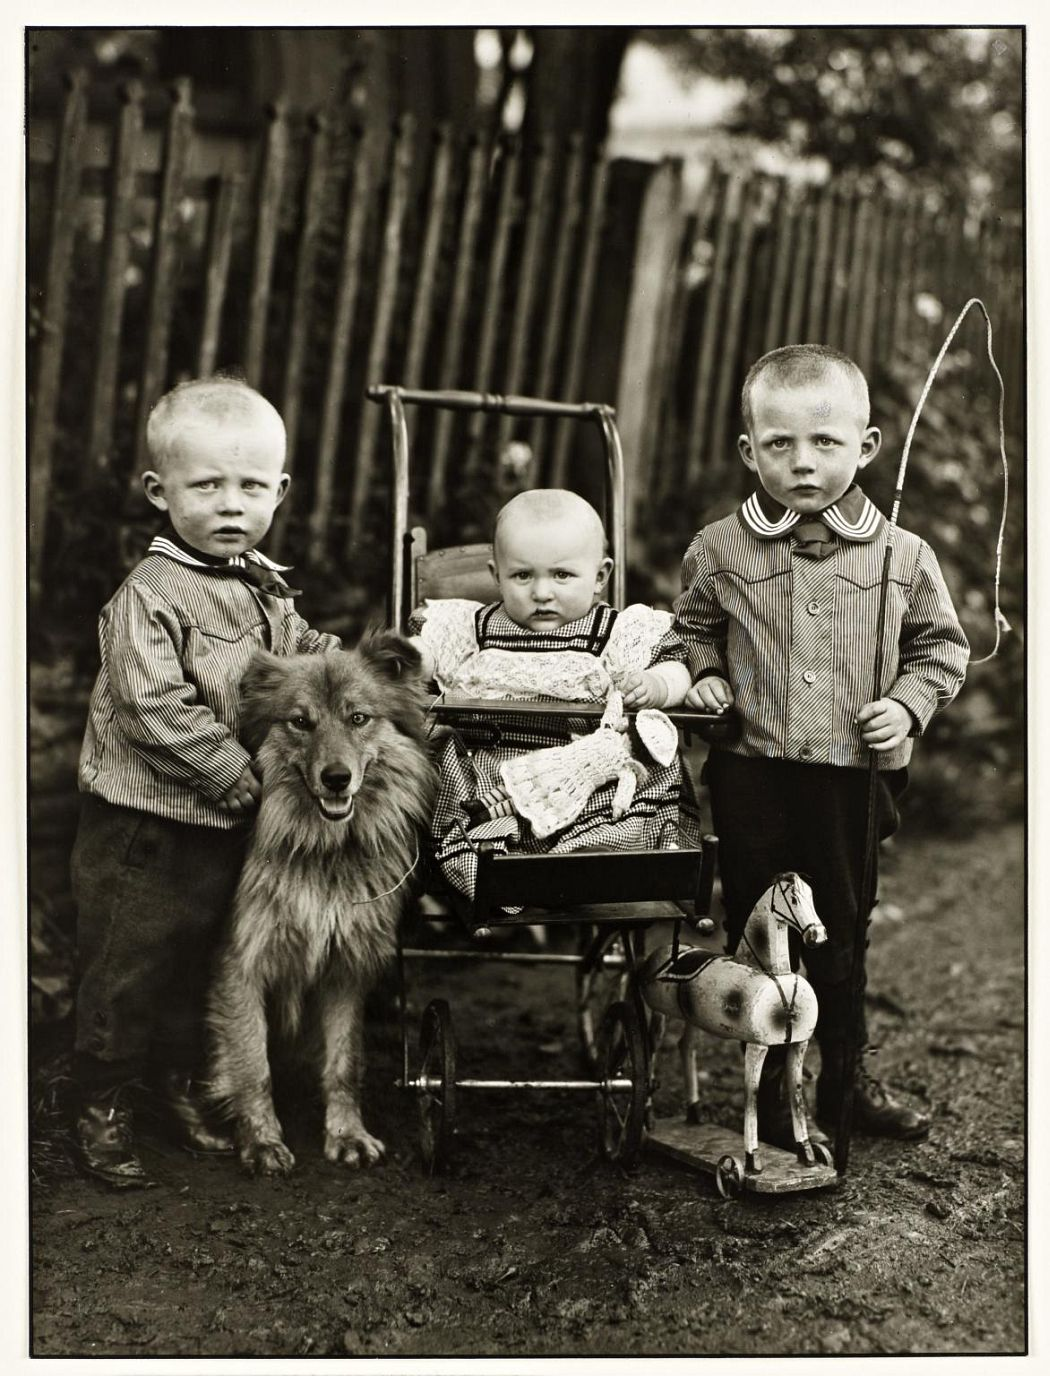 Farm Children c.1913, printed 1991 August Sander 1876-1964 ARTIST ROOMS Tate and National Galleries of Scotland. Lent by Anthony d'Offay 2010